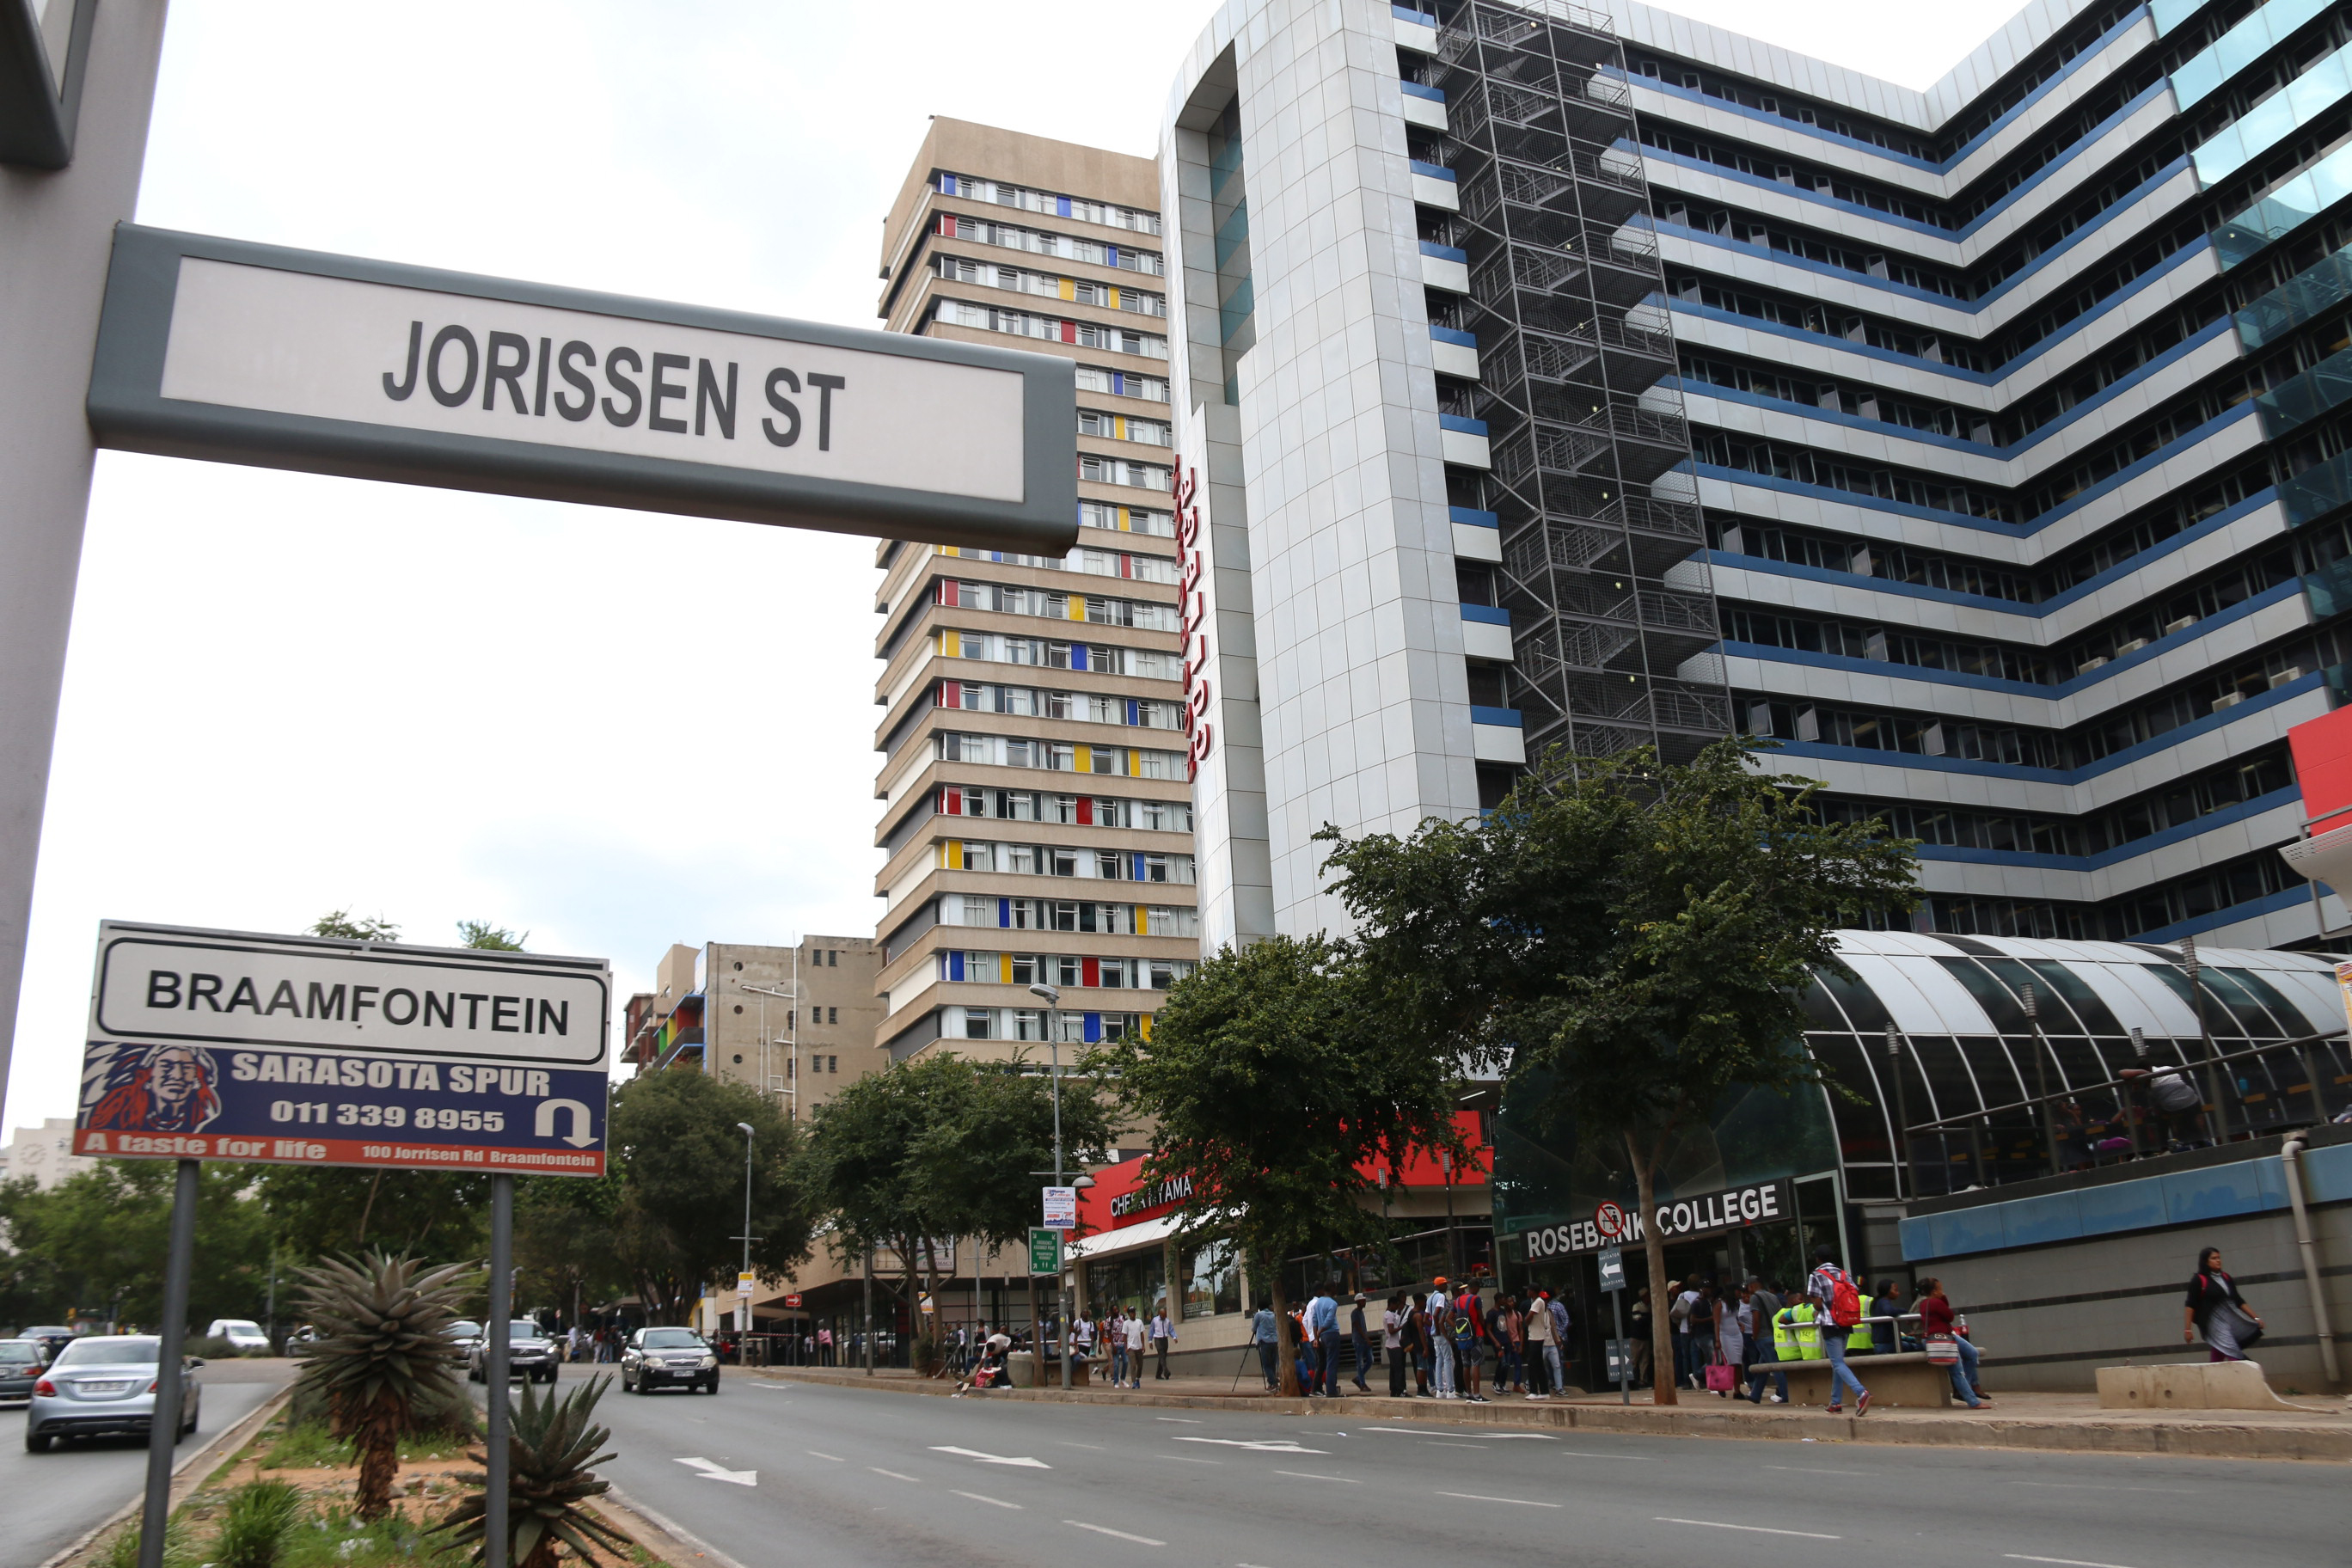 Online fraudsters continue to scam students in Braamfontein